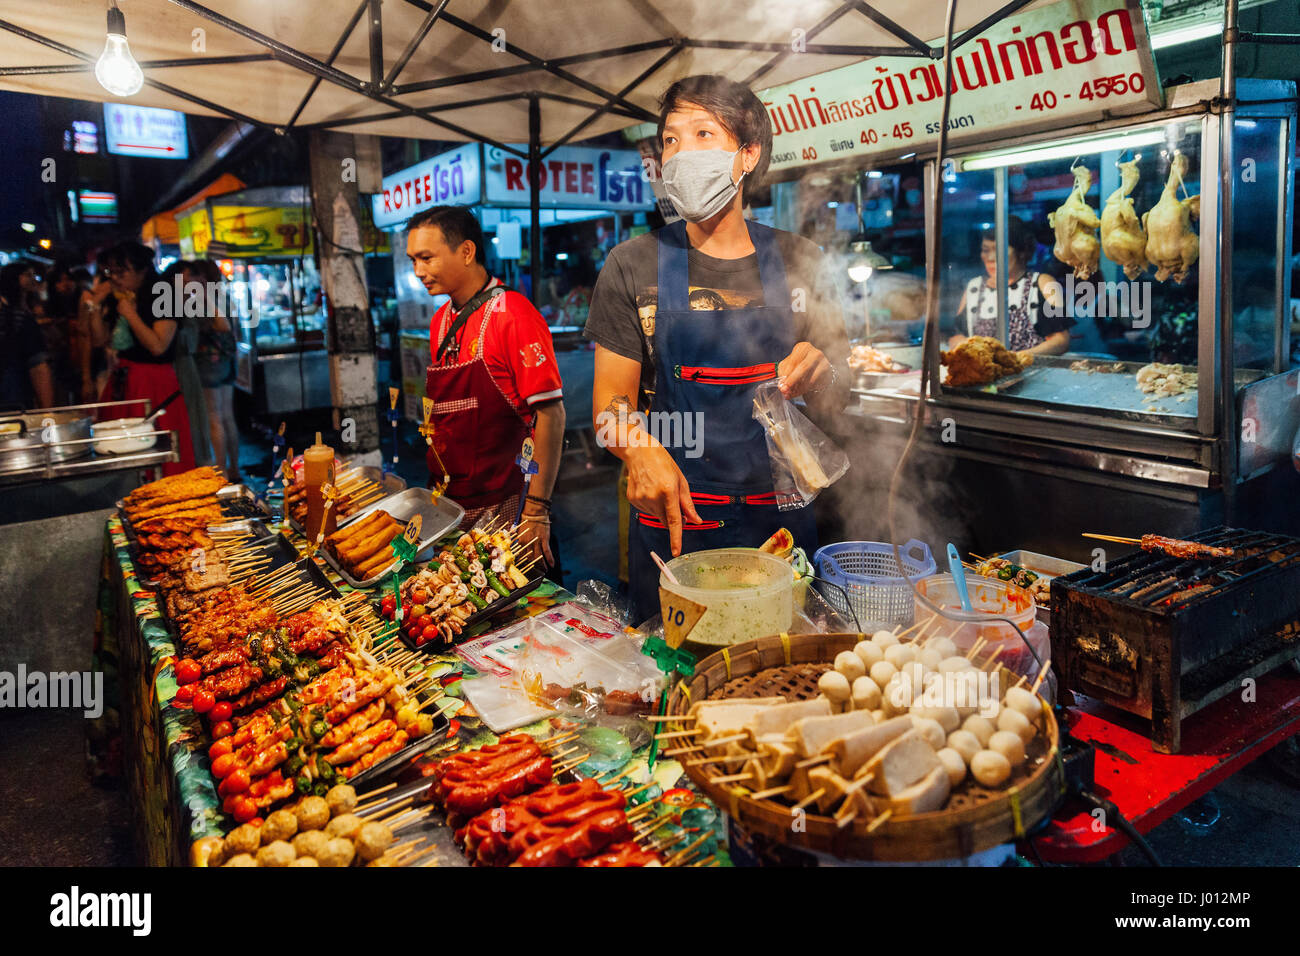 Chiang Mai, Thailand - August 27, 2016: Young men sell satay at the Saturday Night Market on August 27, 2016 in - Stock Image